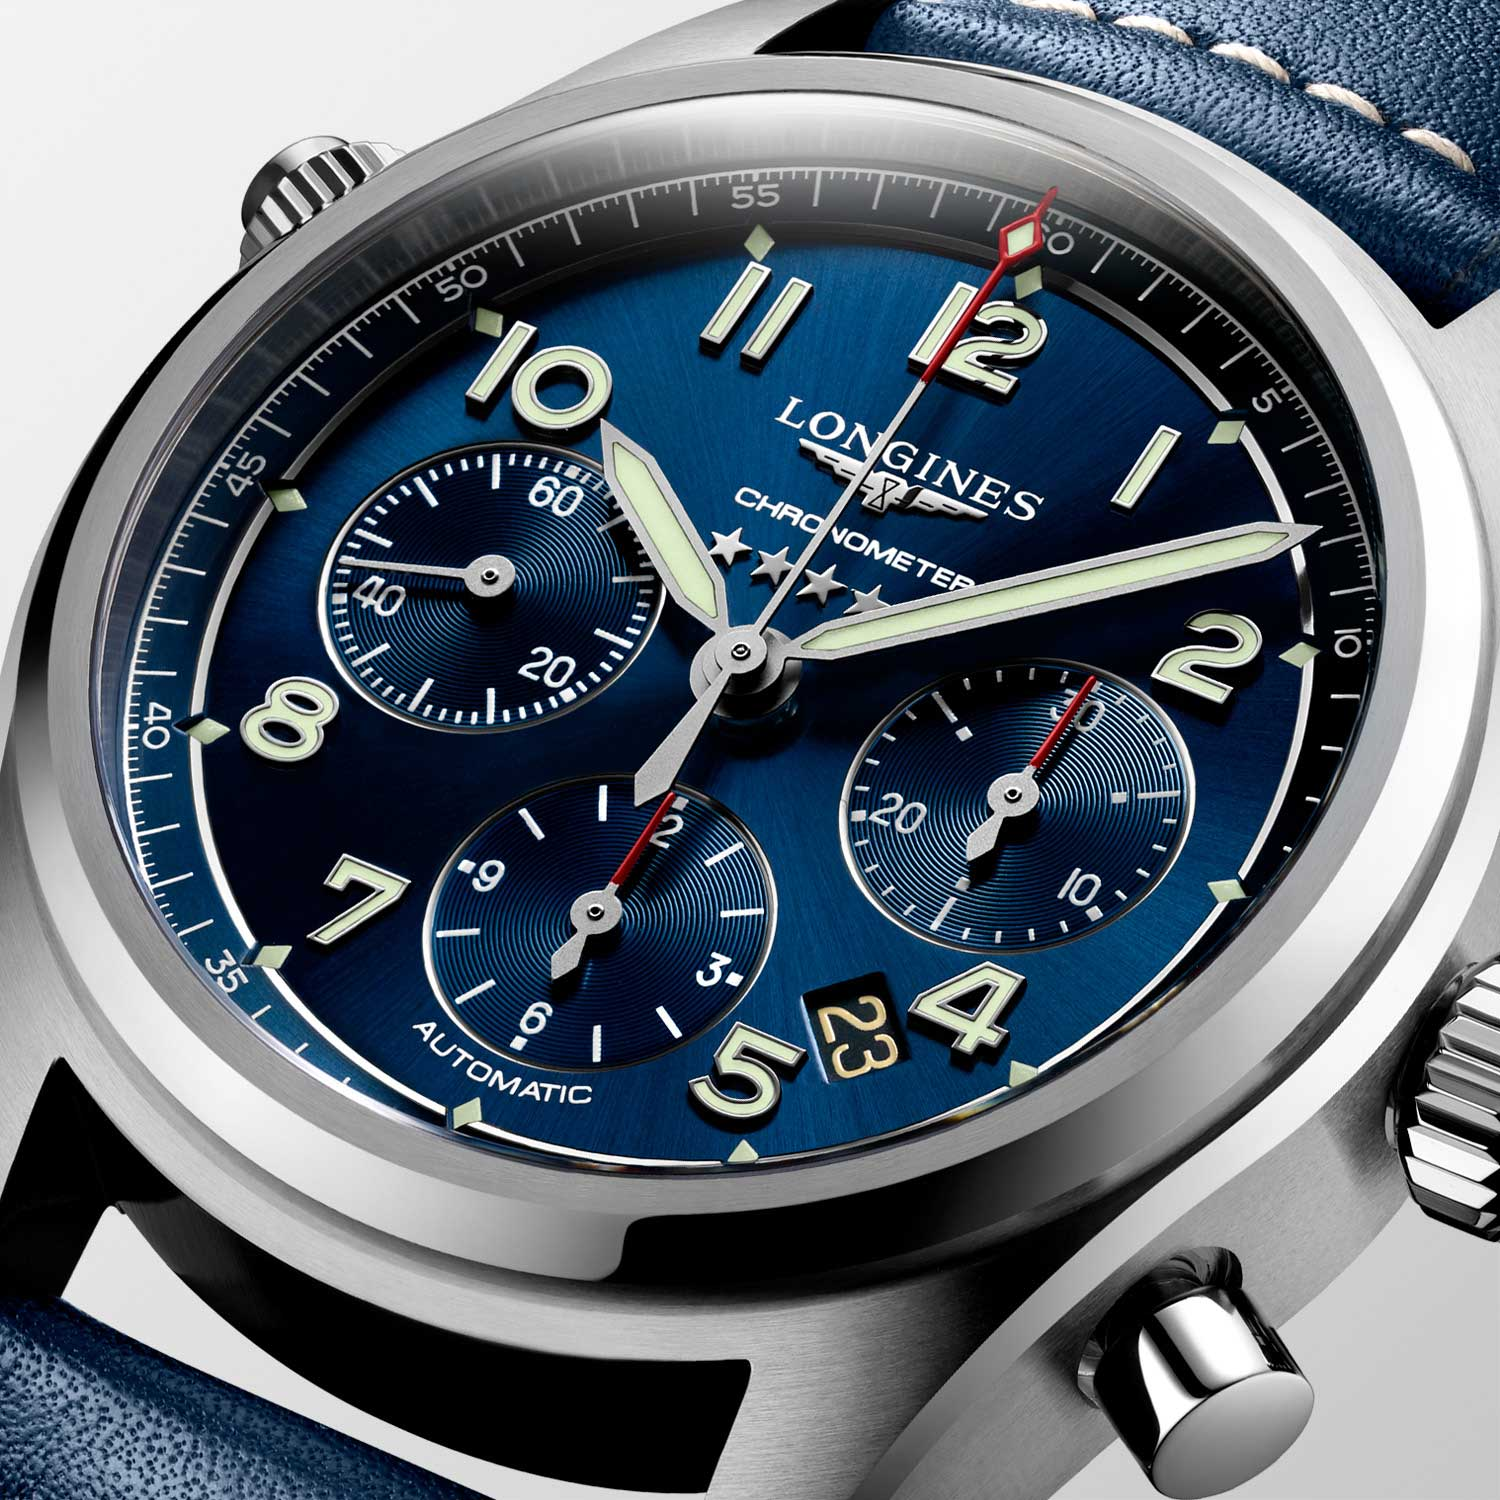 The chronograph addition to the Spirit collection is a 42mm satin and polished stainless steel timepiece; houses a COSC-certified column-wheel chronograph movement (L688.4) with silicon hairspring; a domed sapphire glass protects a sunray blue dial set with Arabic numerals and silvered sandblasted hands coated with Super-LumiNova®; the finishing touch to this exceptional watch is the blue leather strap that complements the case and dial